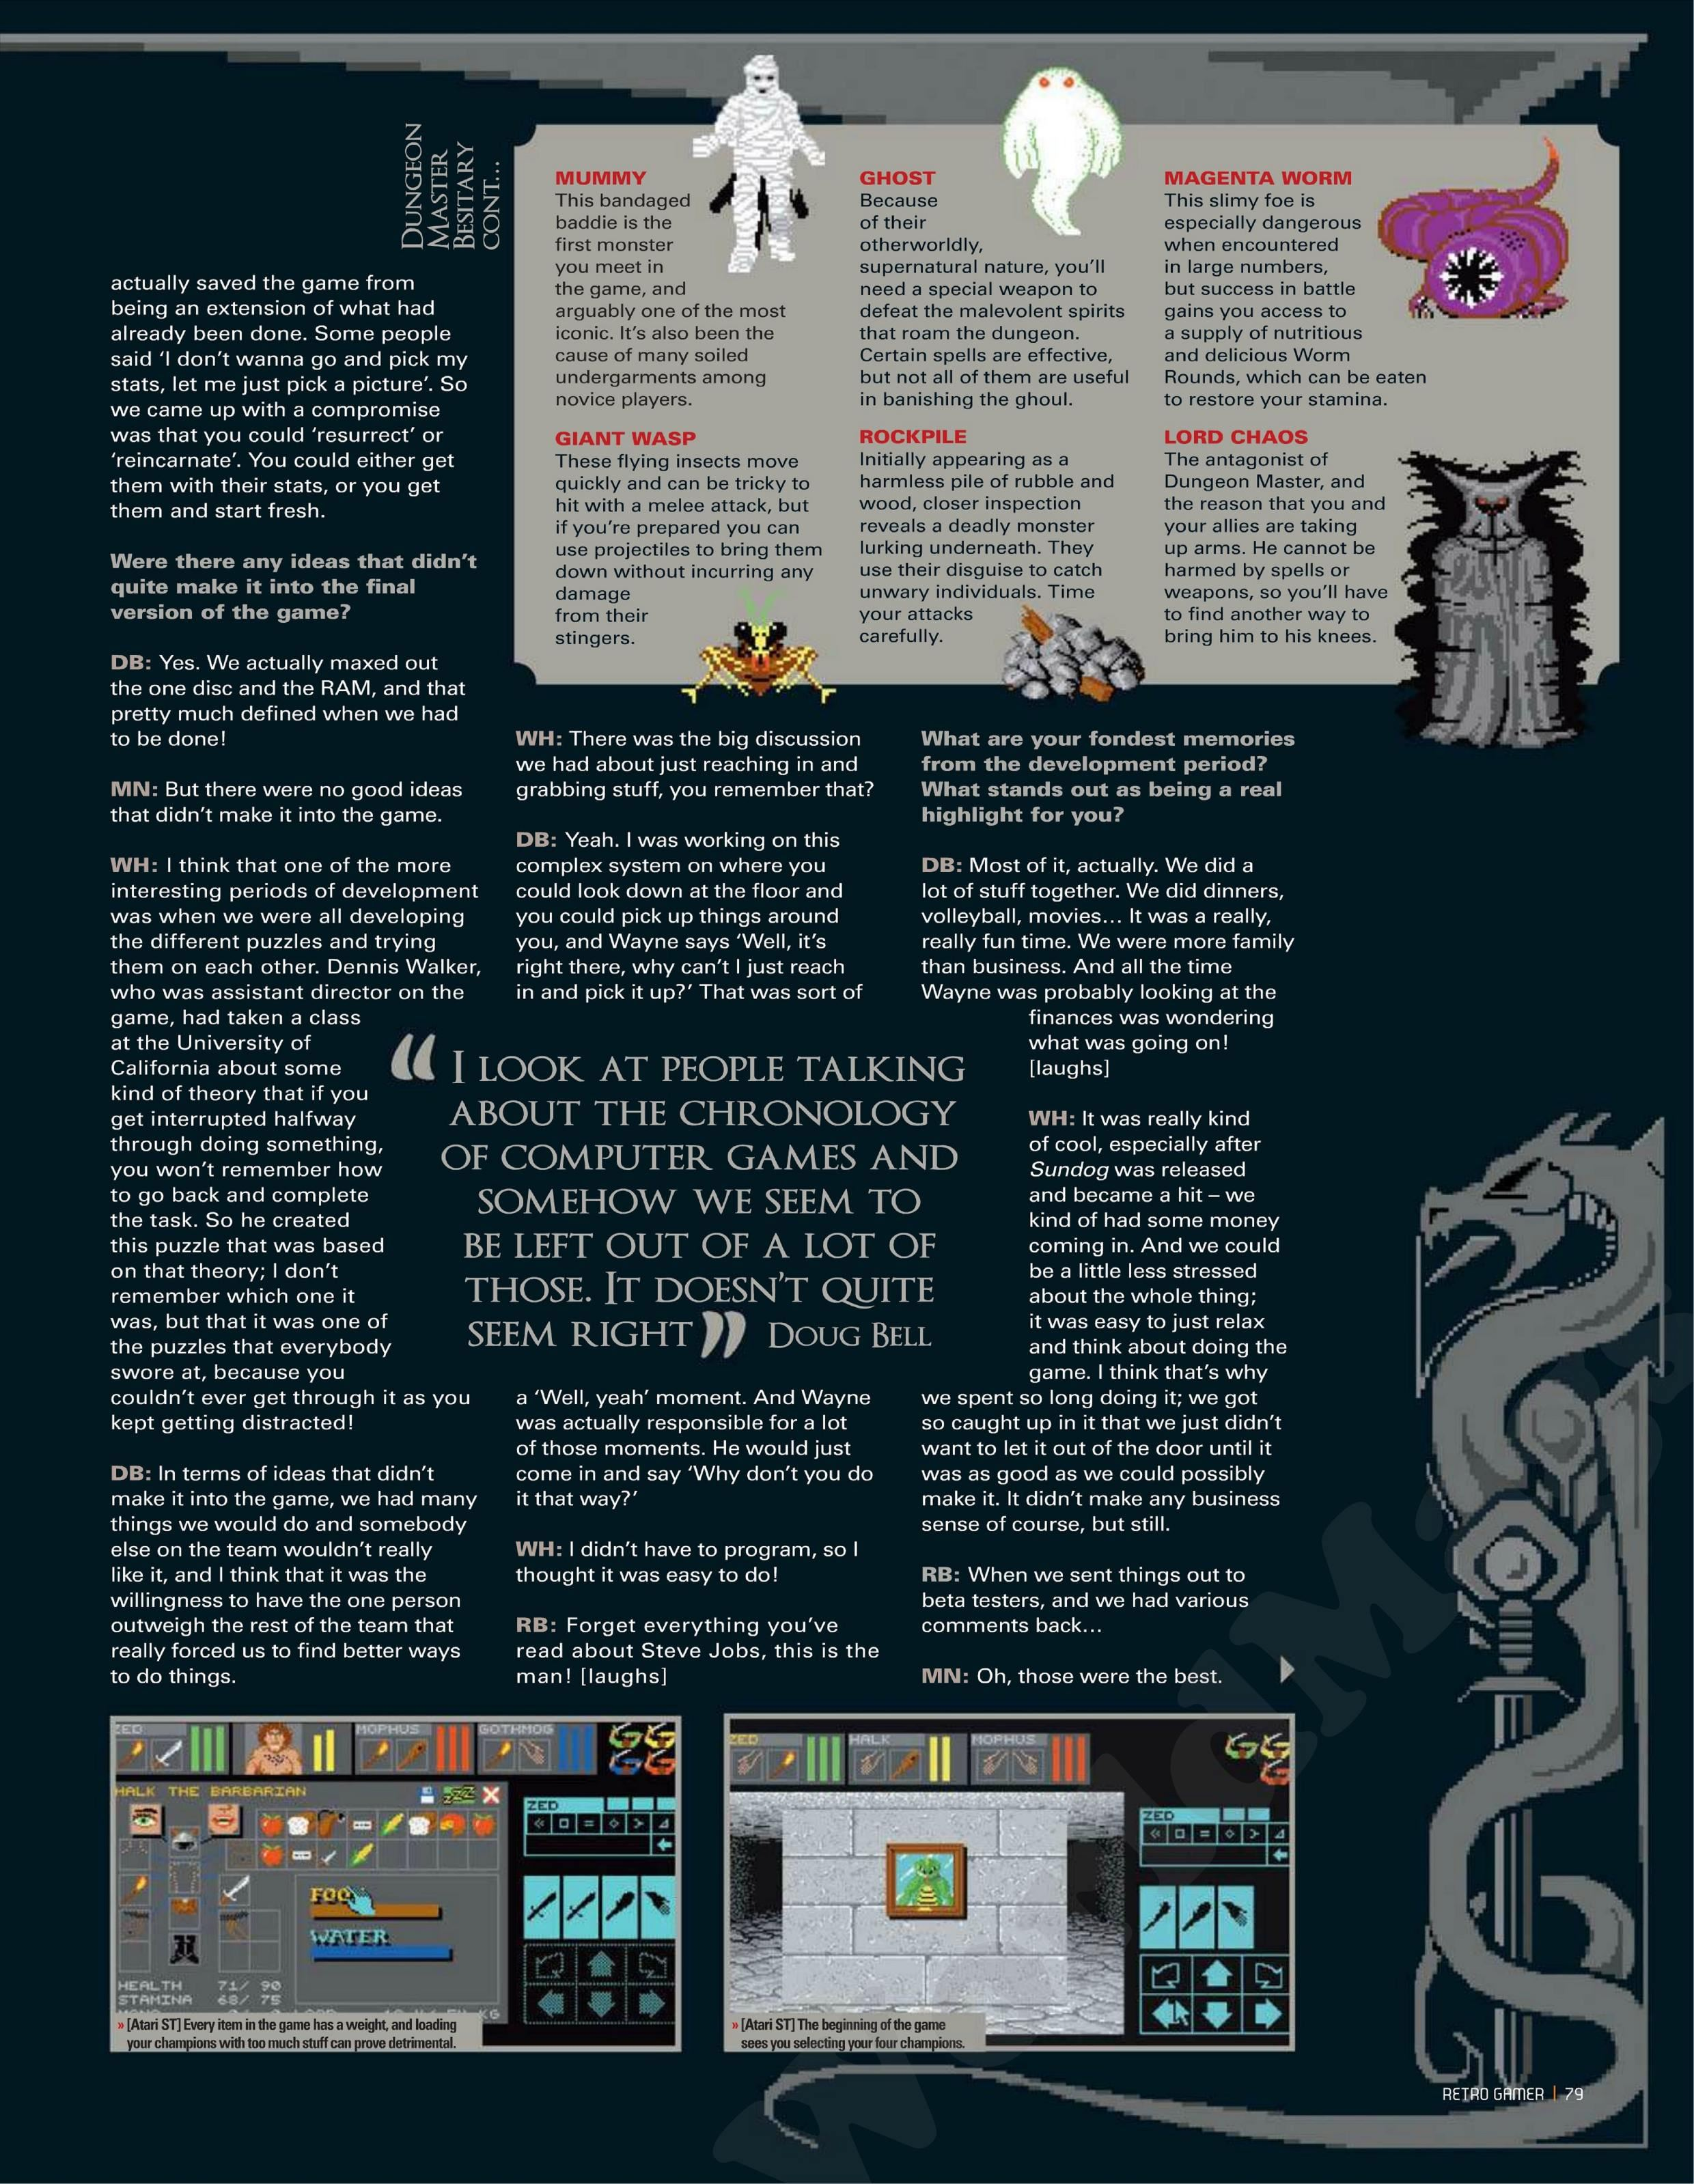 Dungeon Master Game Series Article published in British magazine 'Retro Gamer', Issue #105 July 2012, Page 79